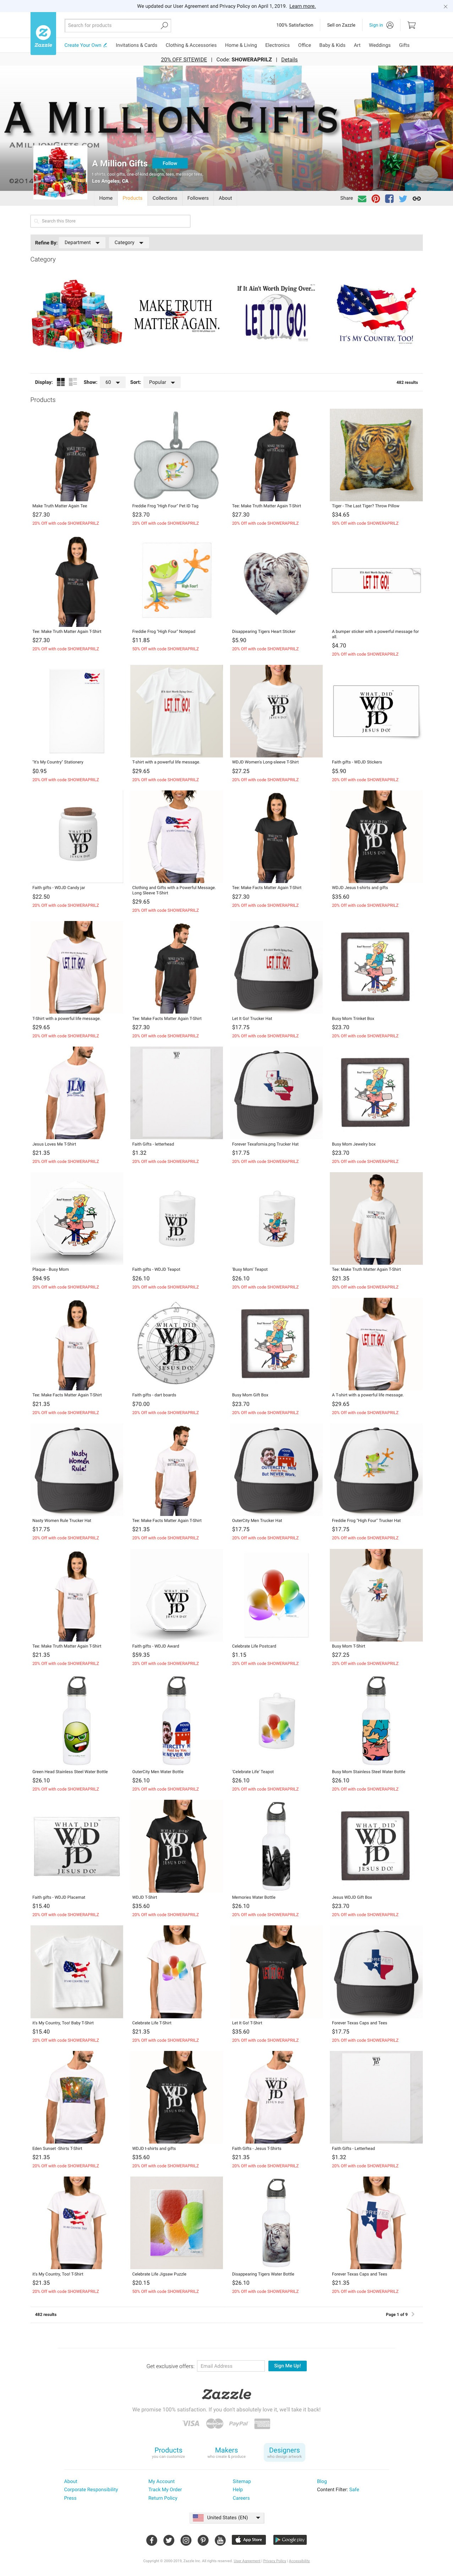 A Million Gifts Products on Zazzle